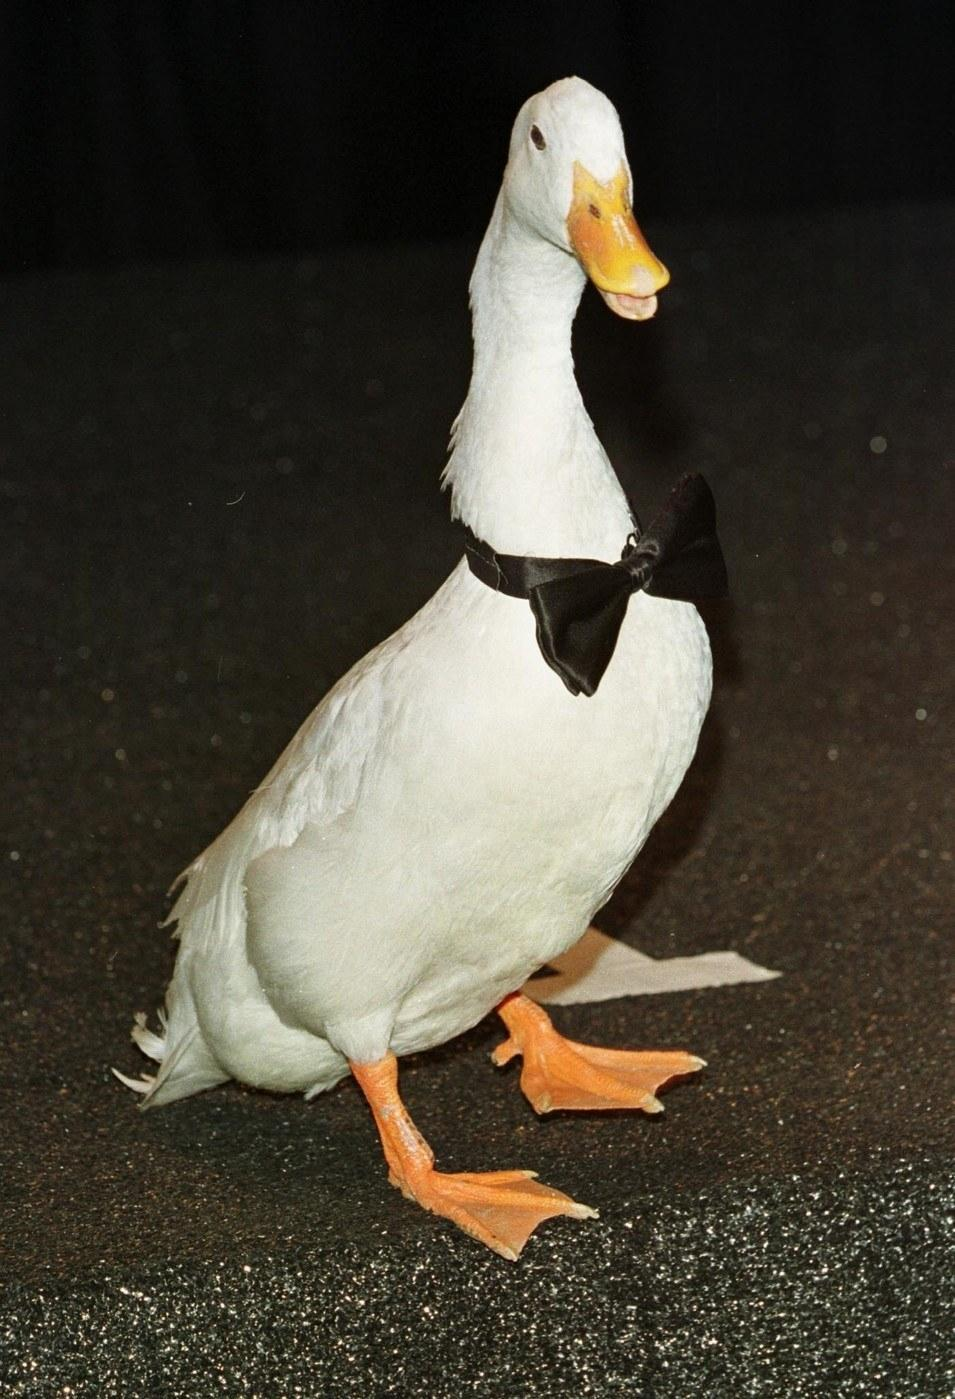 A duck with a bow tie